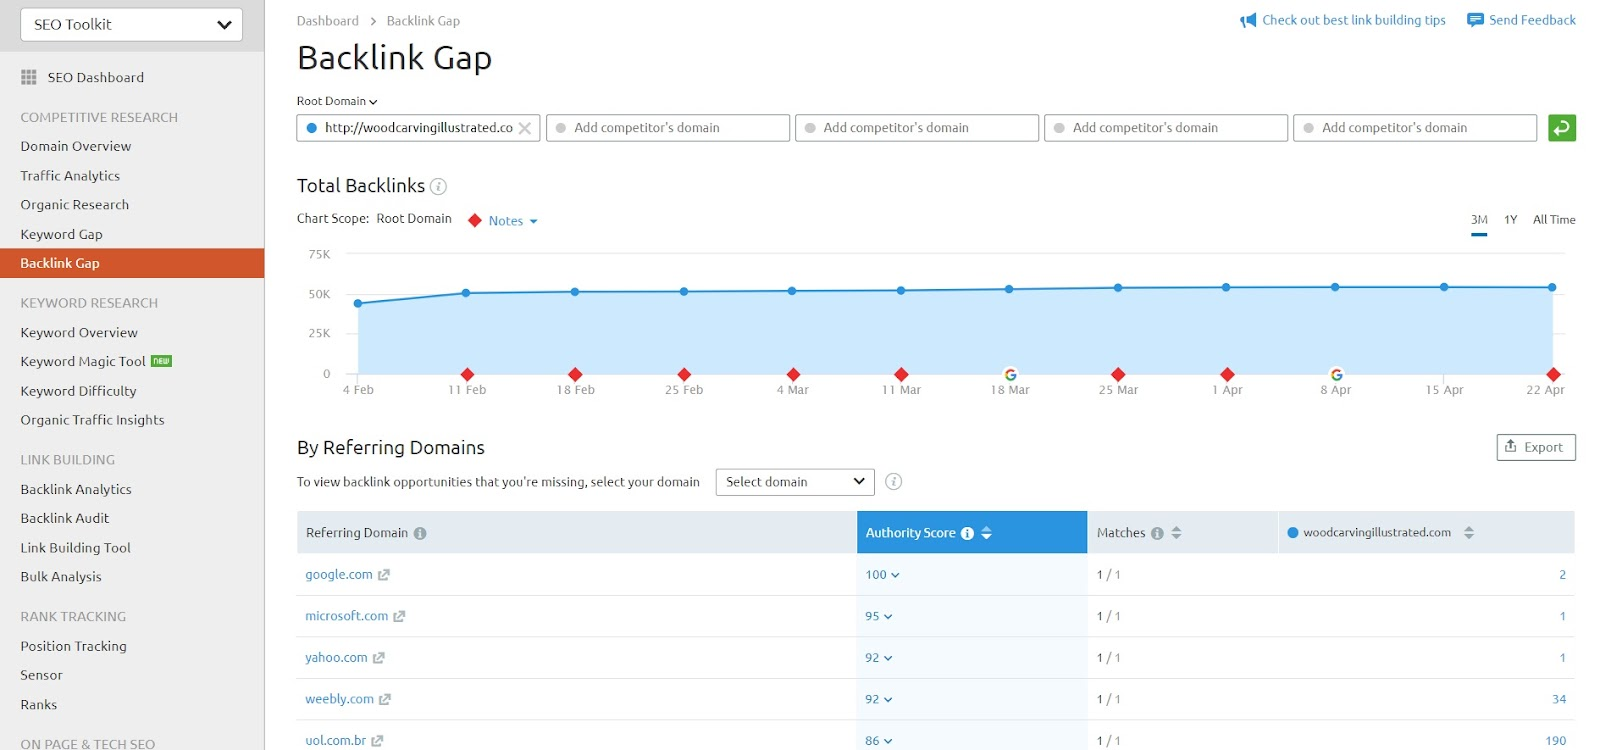 Screenshot of SEMRush Backlink Gap feature.